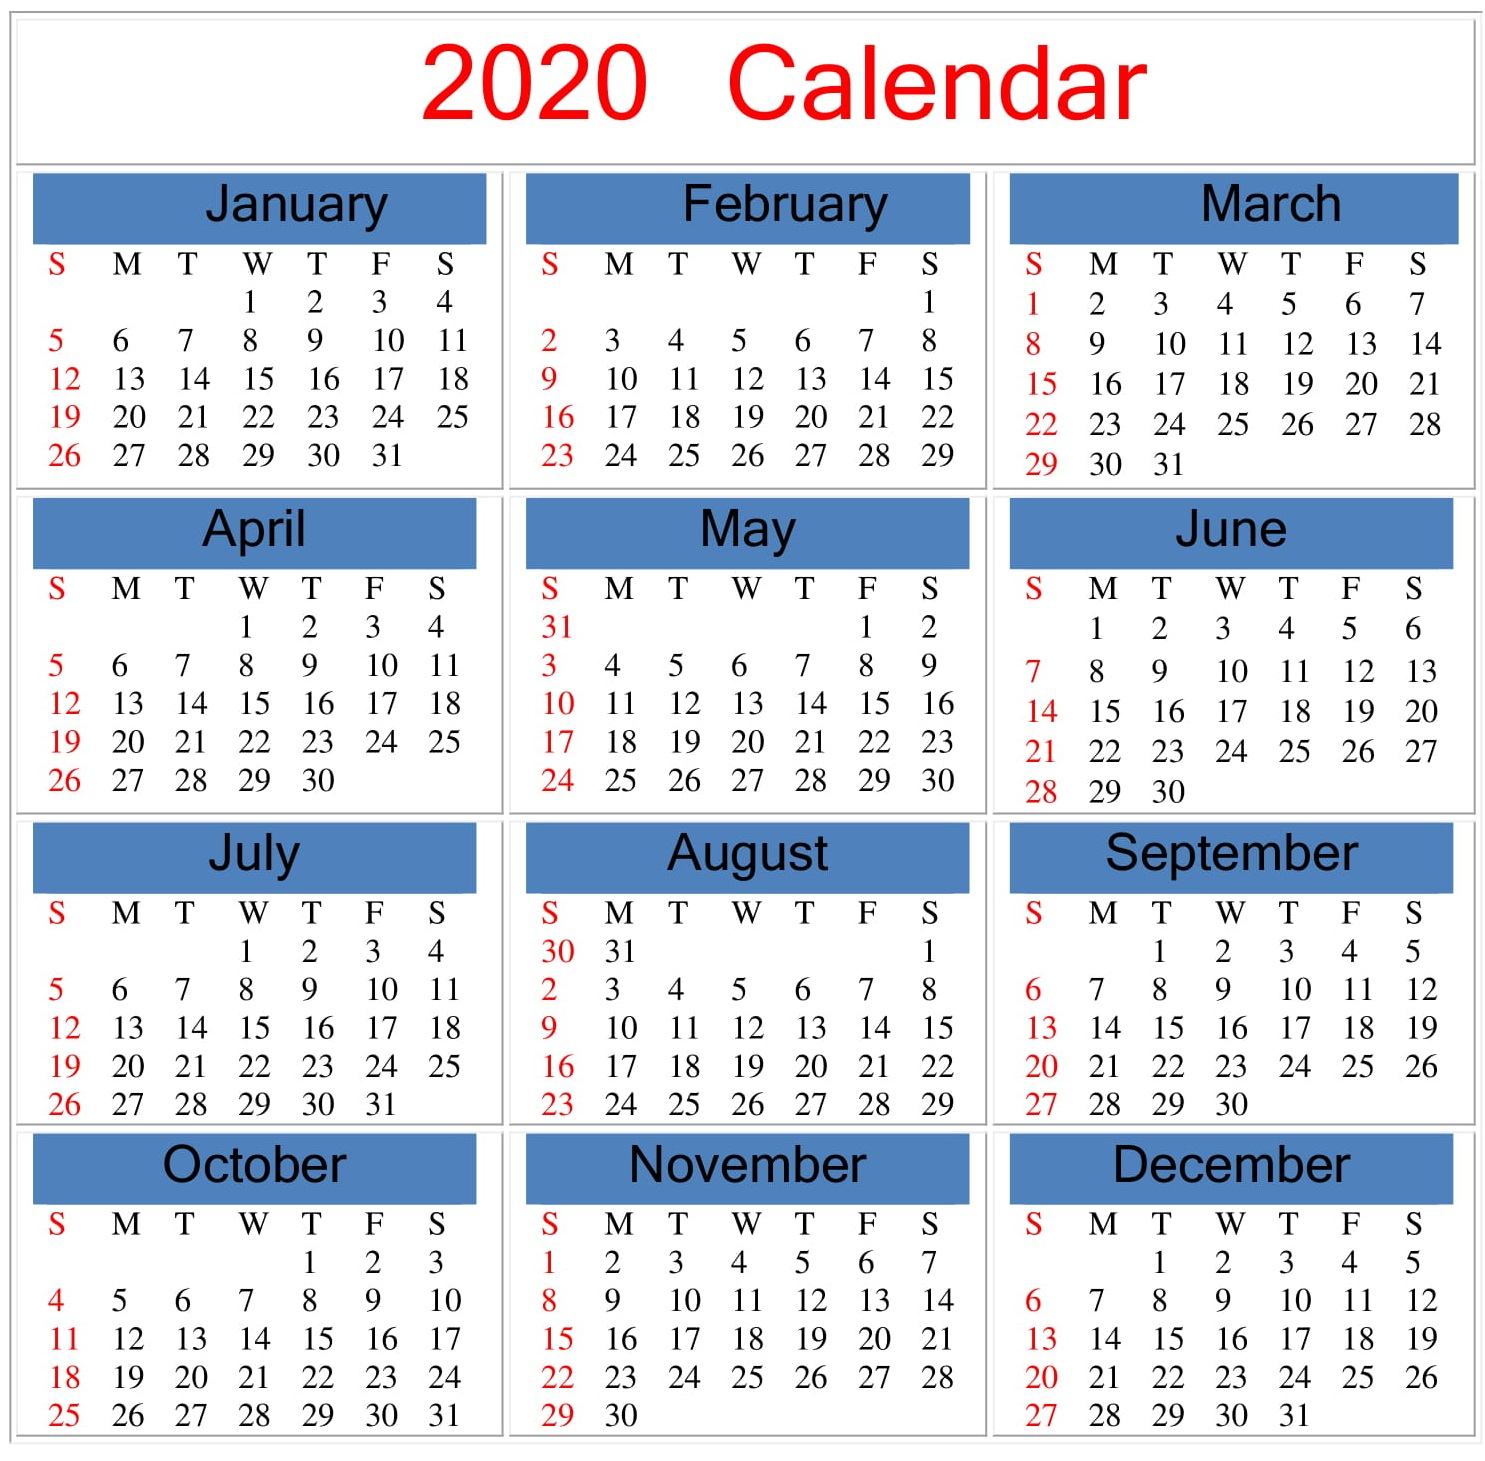 Free Printable 2020 Calendar Word, Pdf, Excel Document intended for How To Convert Xcel Doc To Calendar